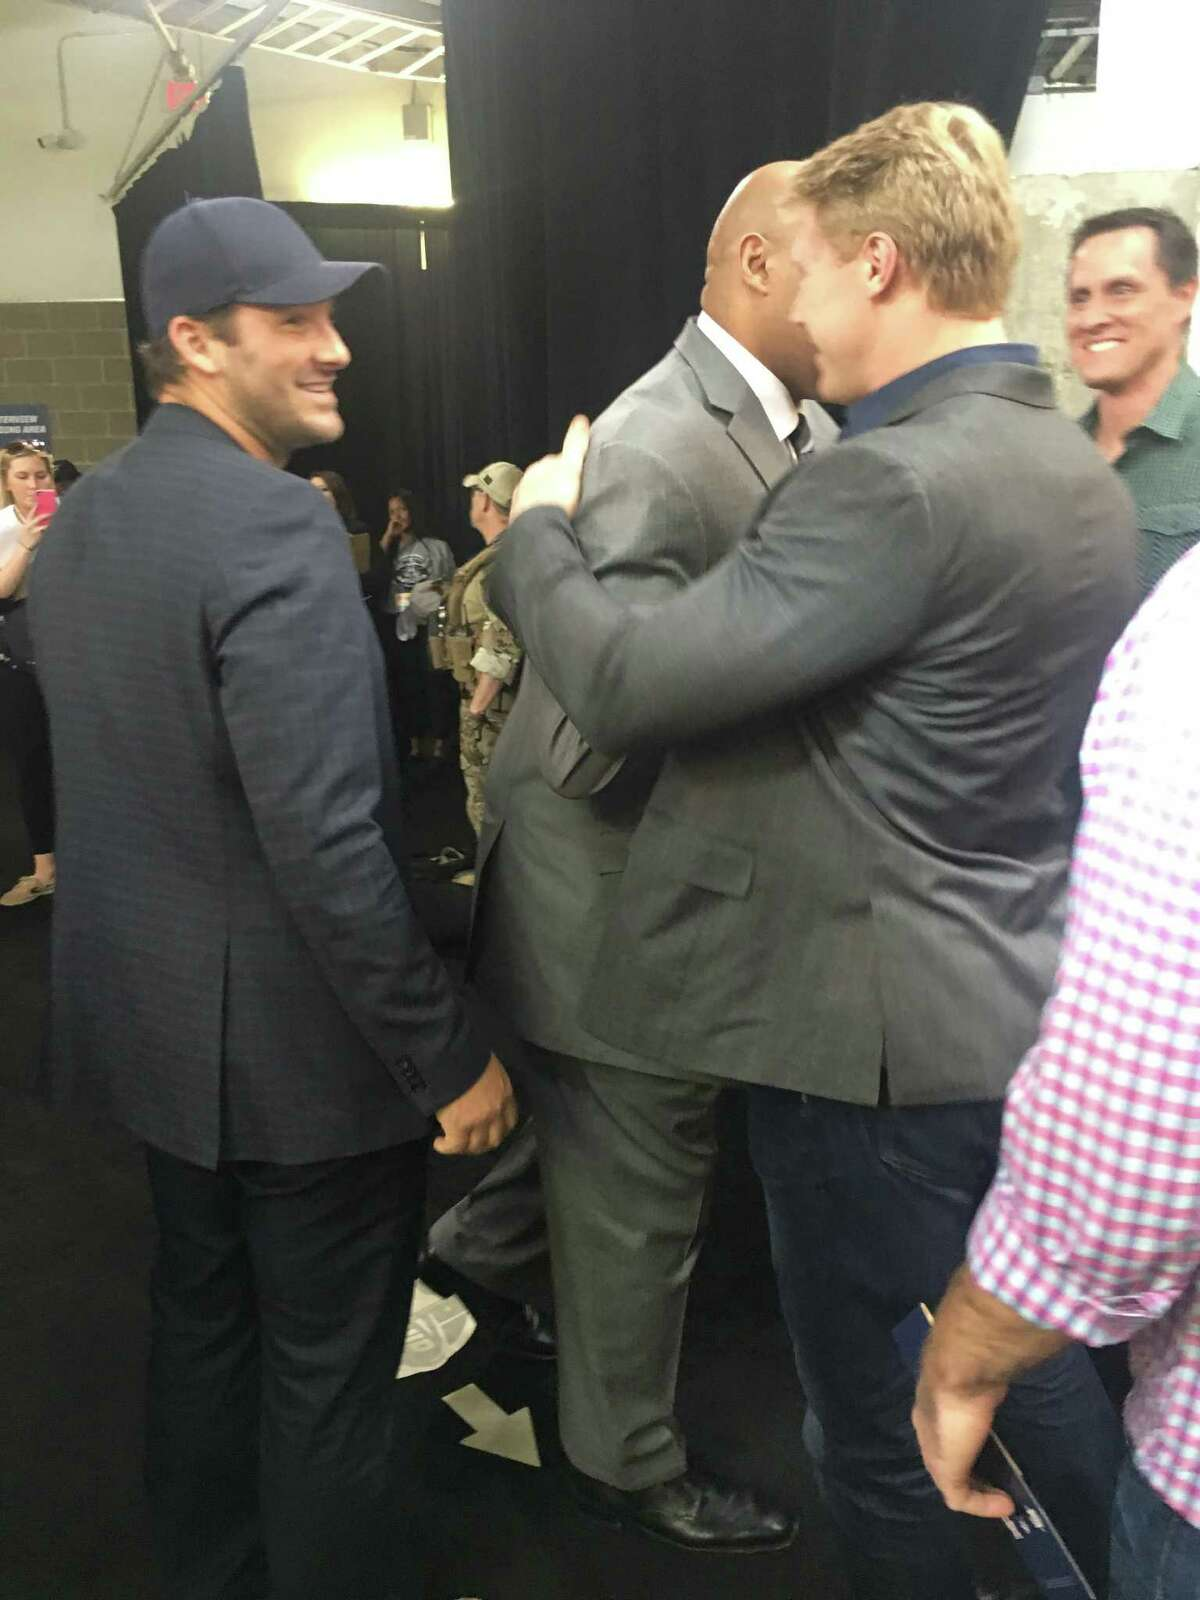 Tony Romo (left) makes his way into NRG Stadium for the Final Four as Barkley greets Romo's friends.